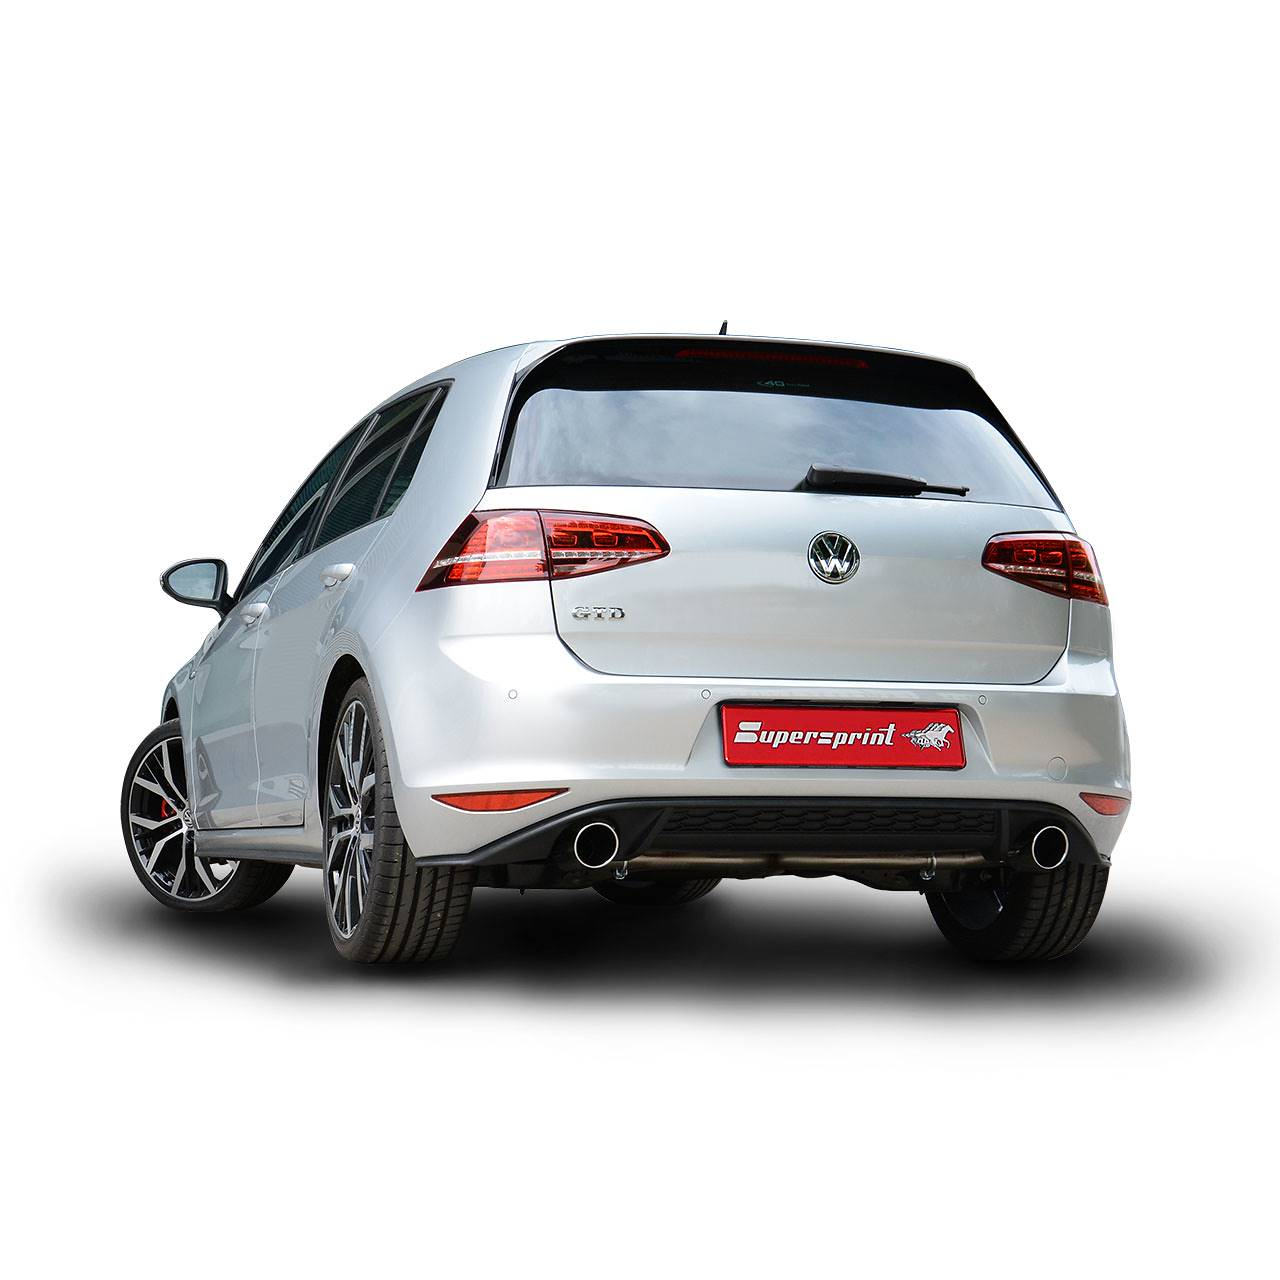 Volkswagen - VW GOLF VII GTD 2.0 (184 PS) 2012 ->  (Sound Generator)